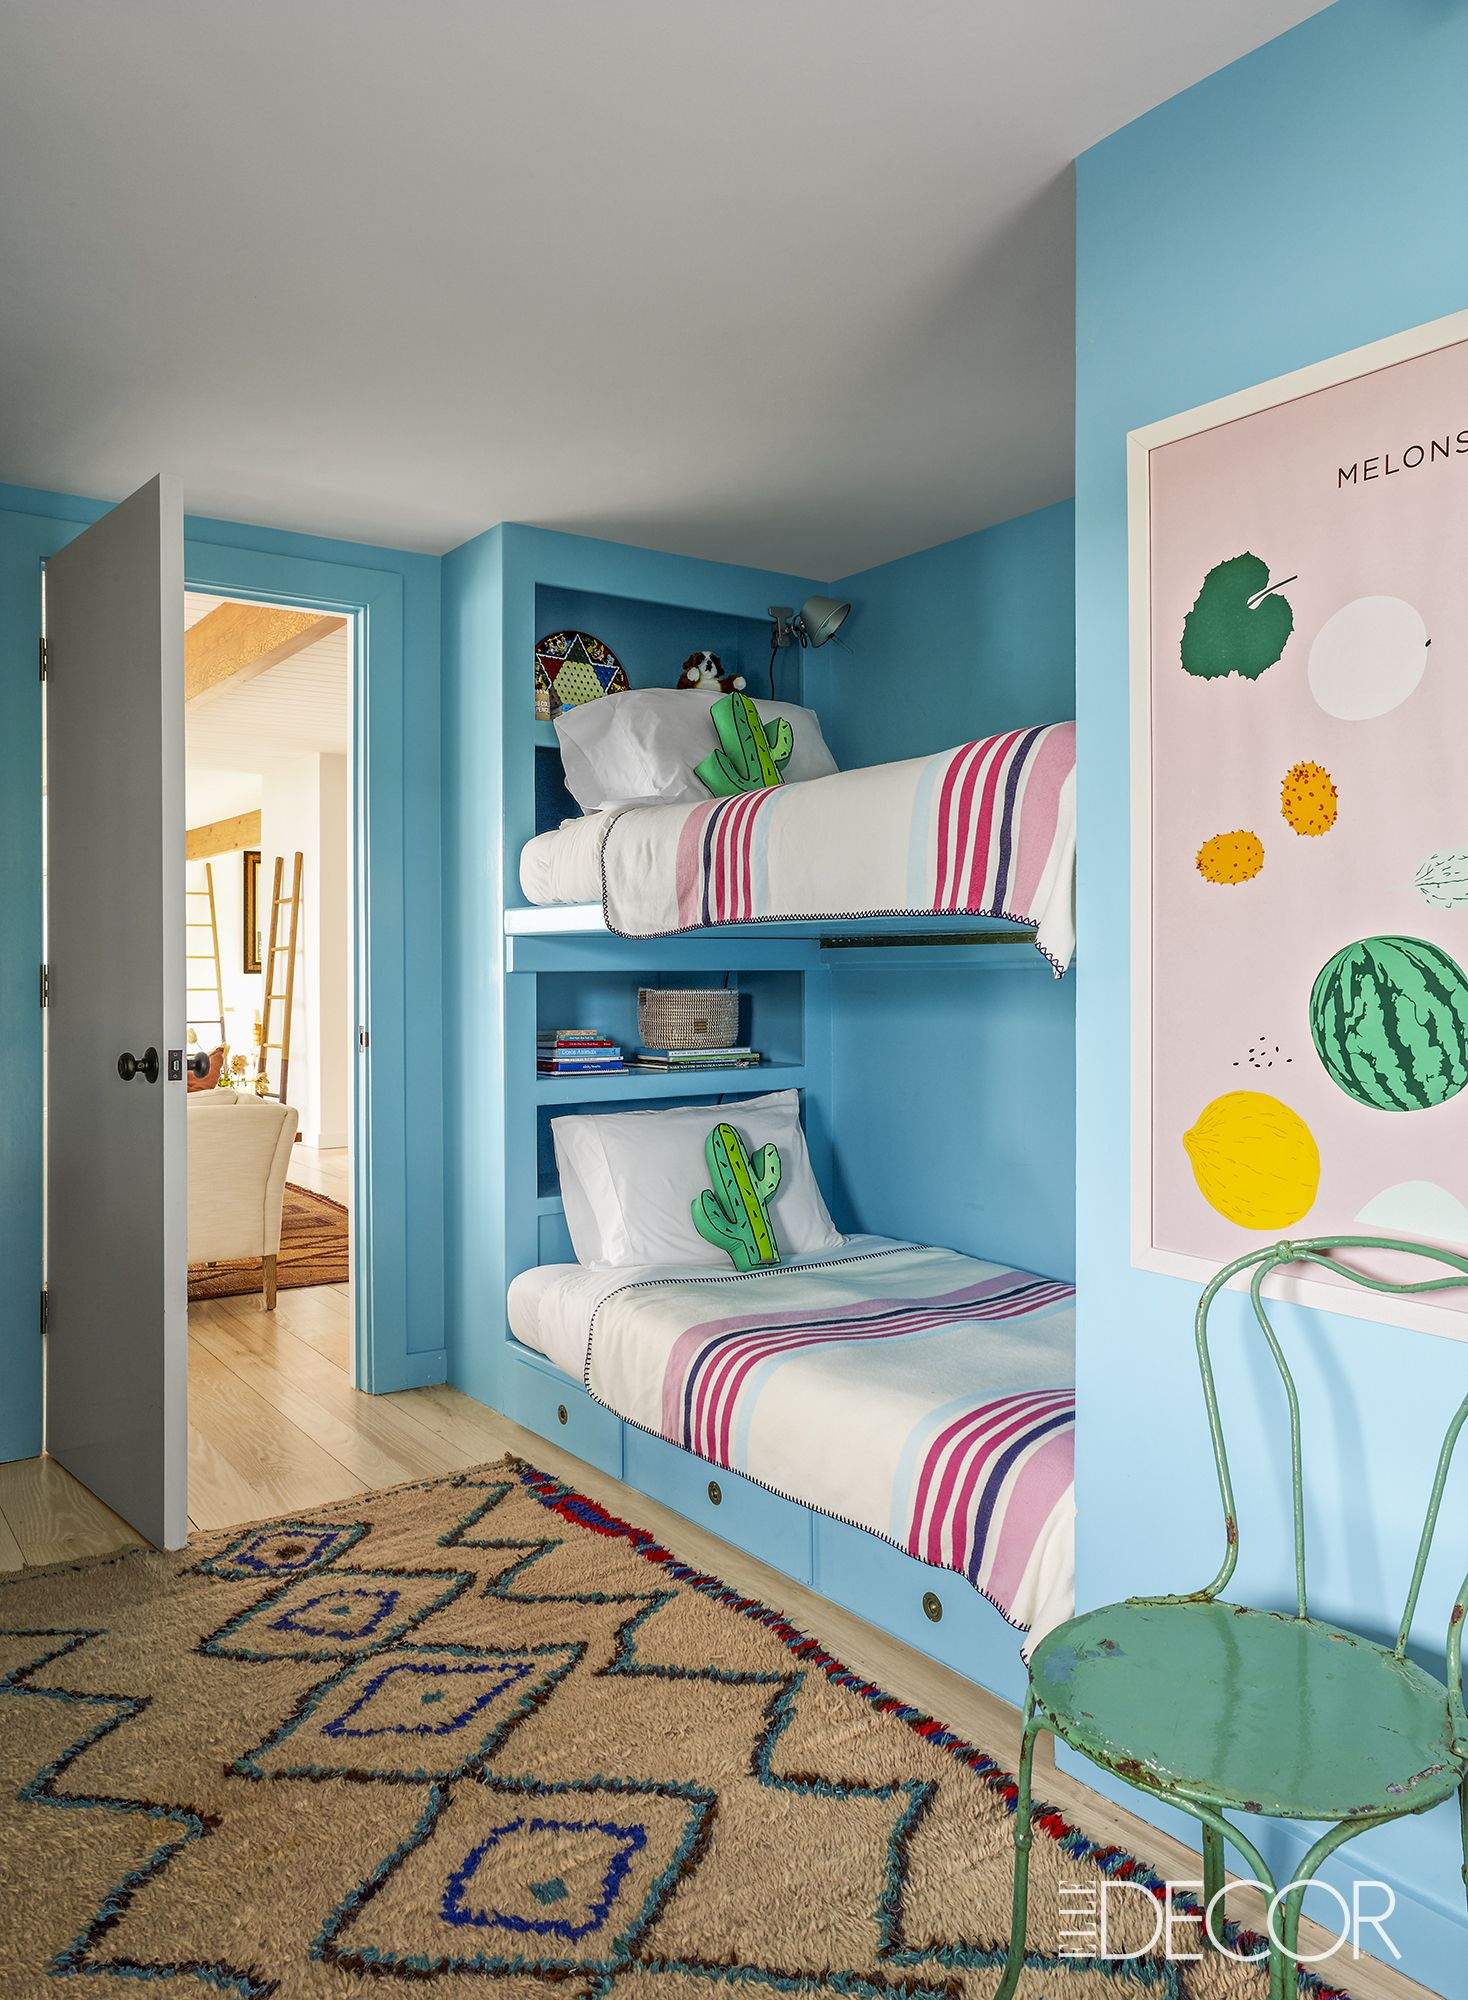 18 cool kids room decorating ideas kids room decor rh elledecor com Room Ideas Girls Room Paint Ideas